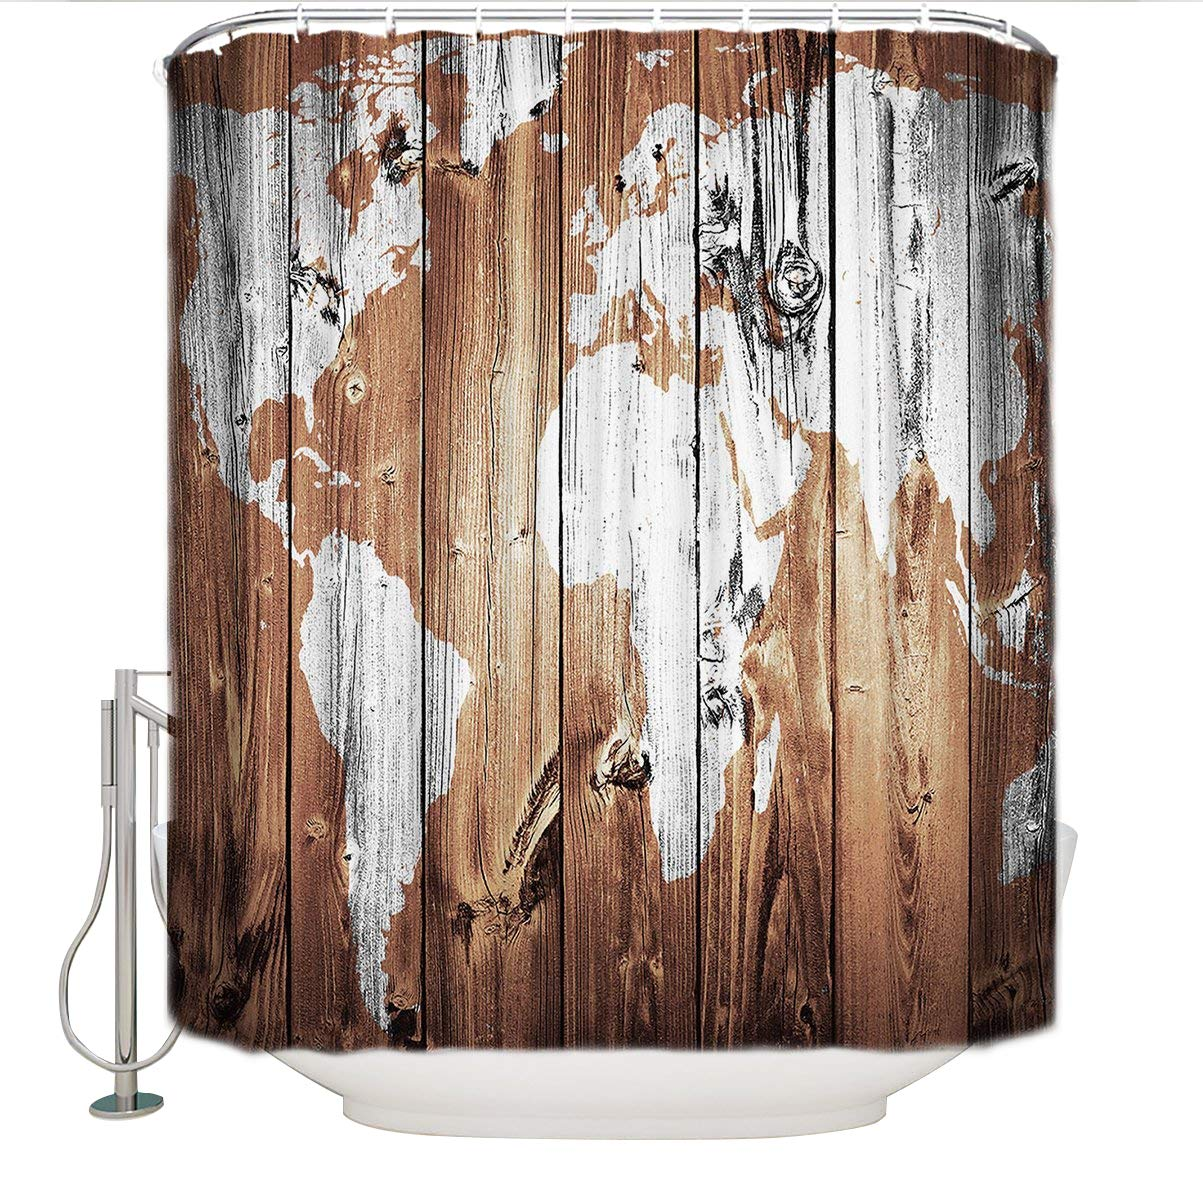 Cloud Dream World Map Rustic Wood-shower curtain-Waterproof Polyester Fabric Bathroom Decoration with Hooks